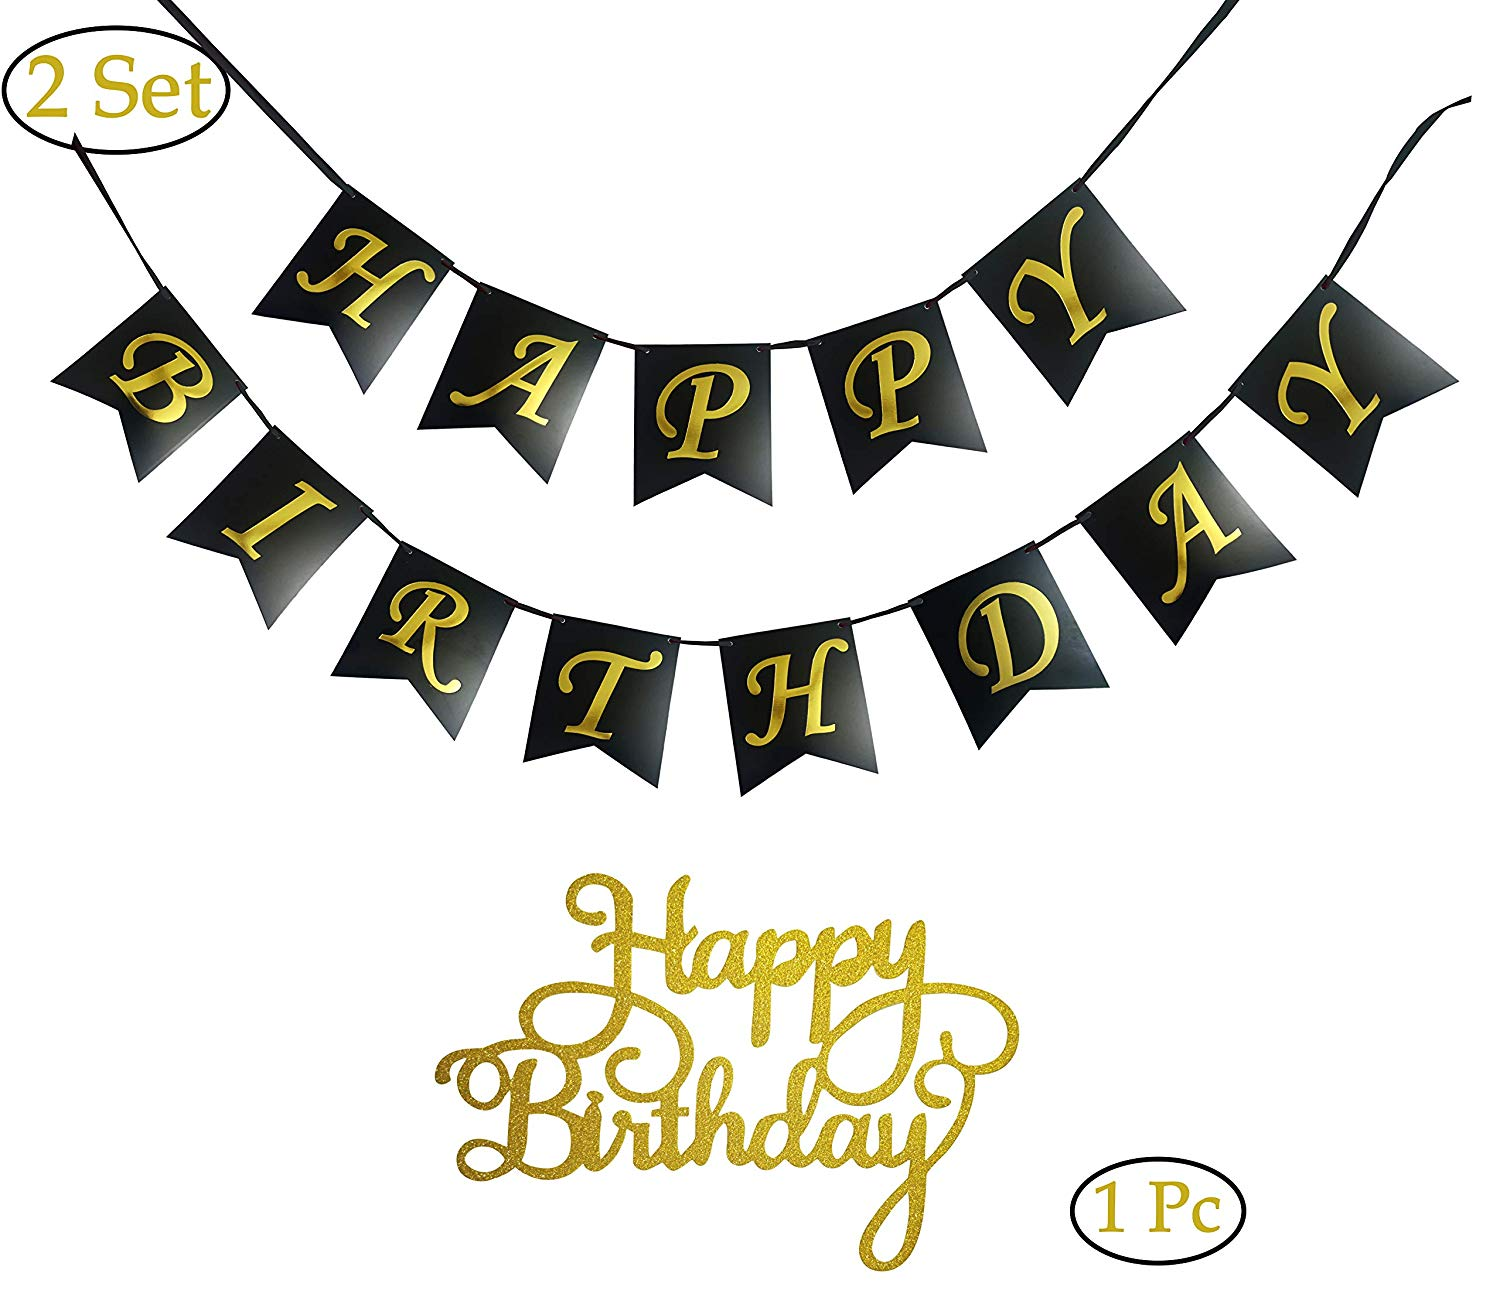 2 x Complete Sets of Happy Birthday Banners Bunting,1 x Pc of Happy Birth Day Cake Topper (Gold Glitter), Party Decorations, Available in Pink,White,Black With Gold Foil Stamp Printing (Black)